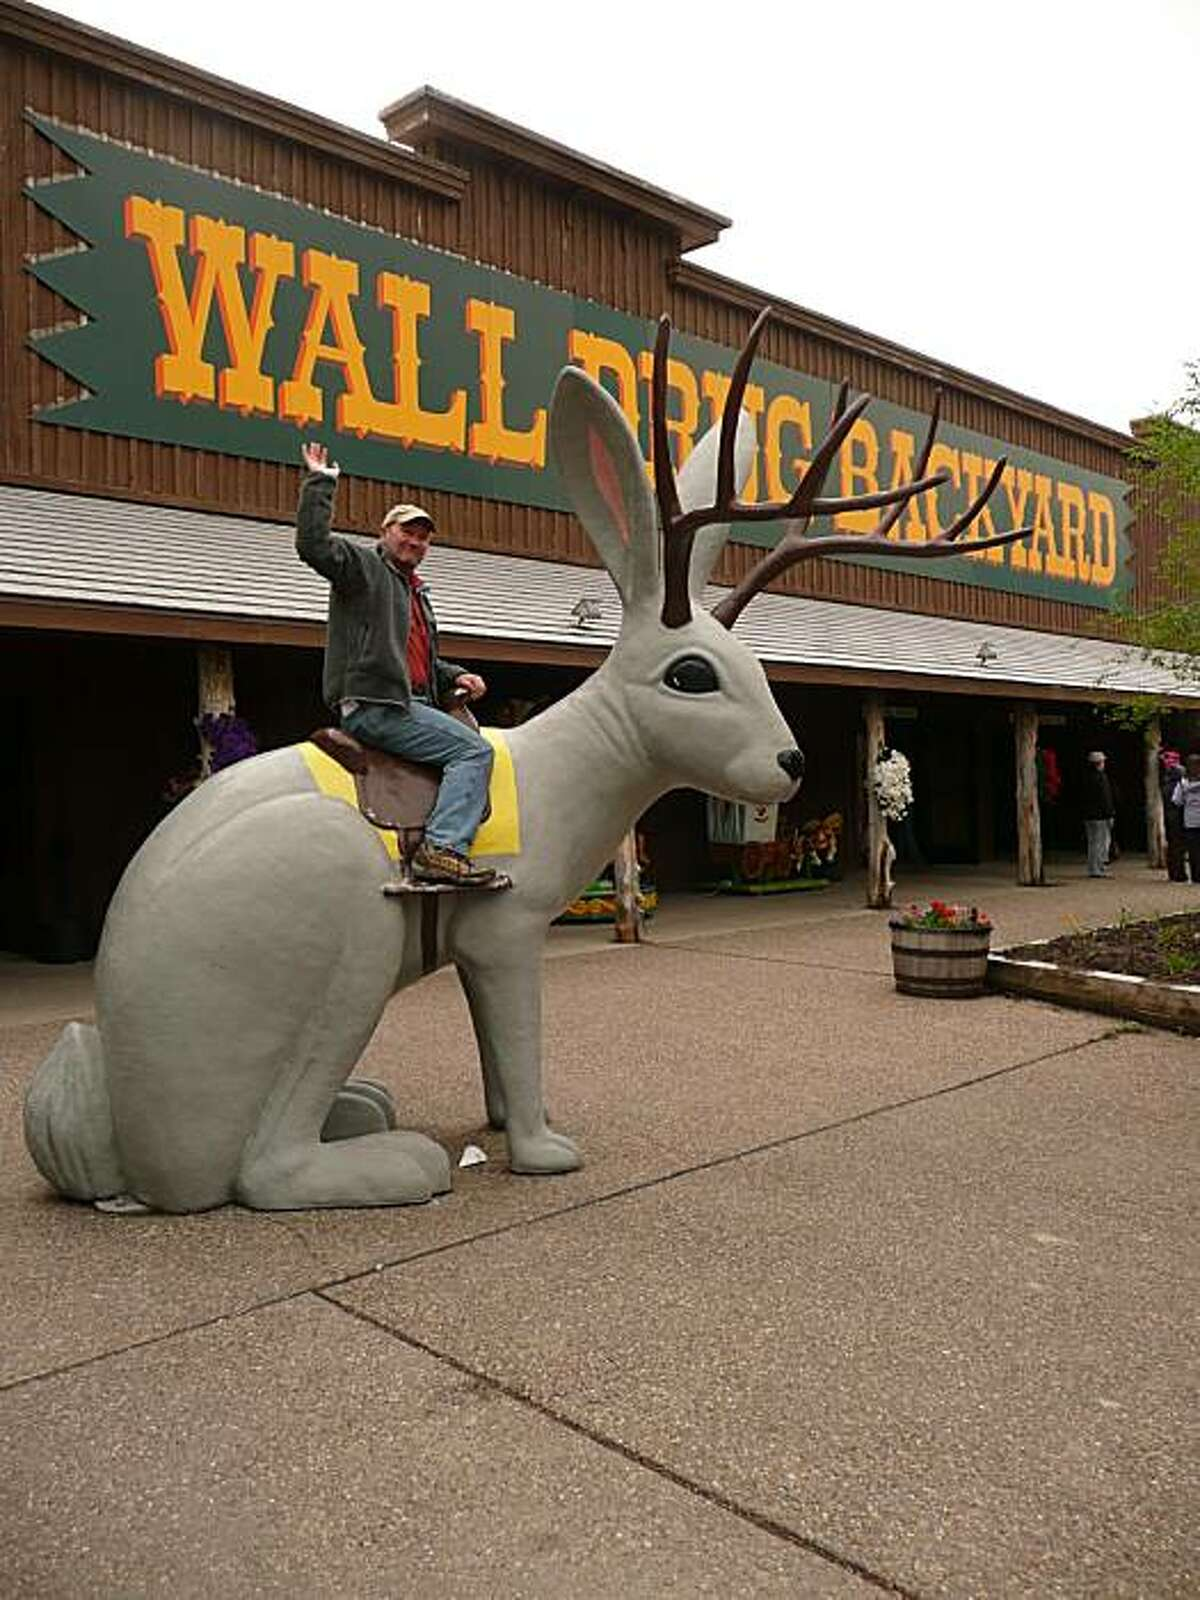 The author riding a statue of a Jackalope at Wall Drug, South Dakota, during a 6,000-mile road trip through the great national parks of the west.